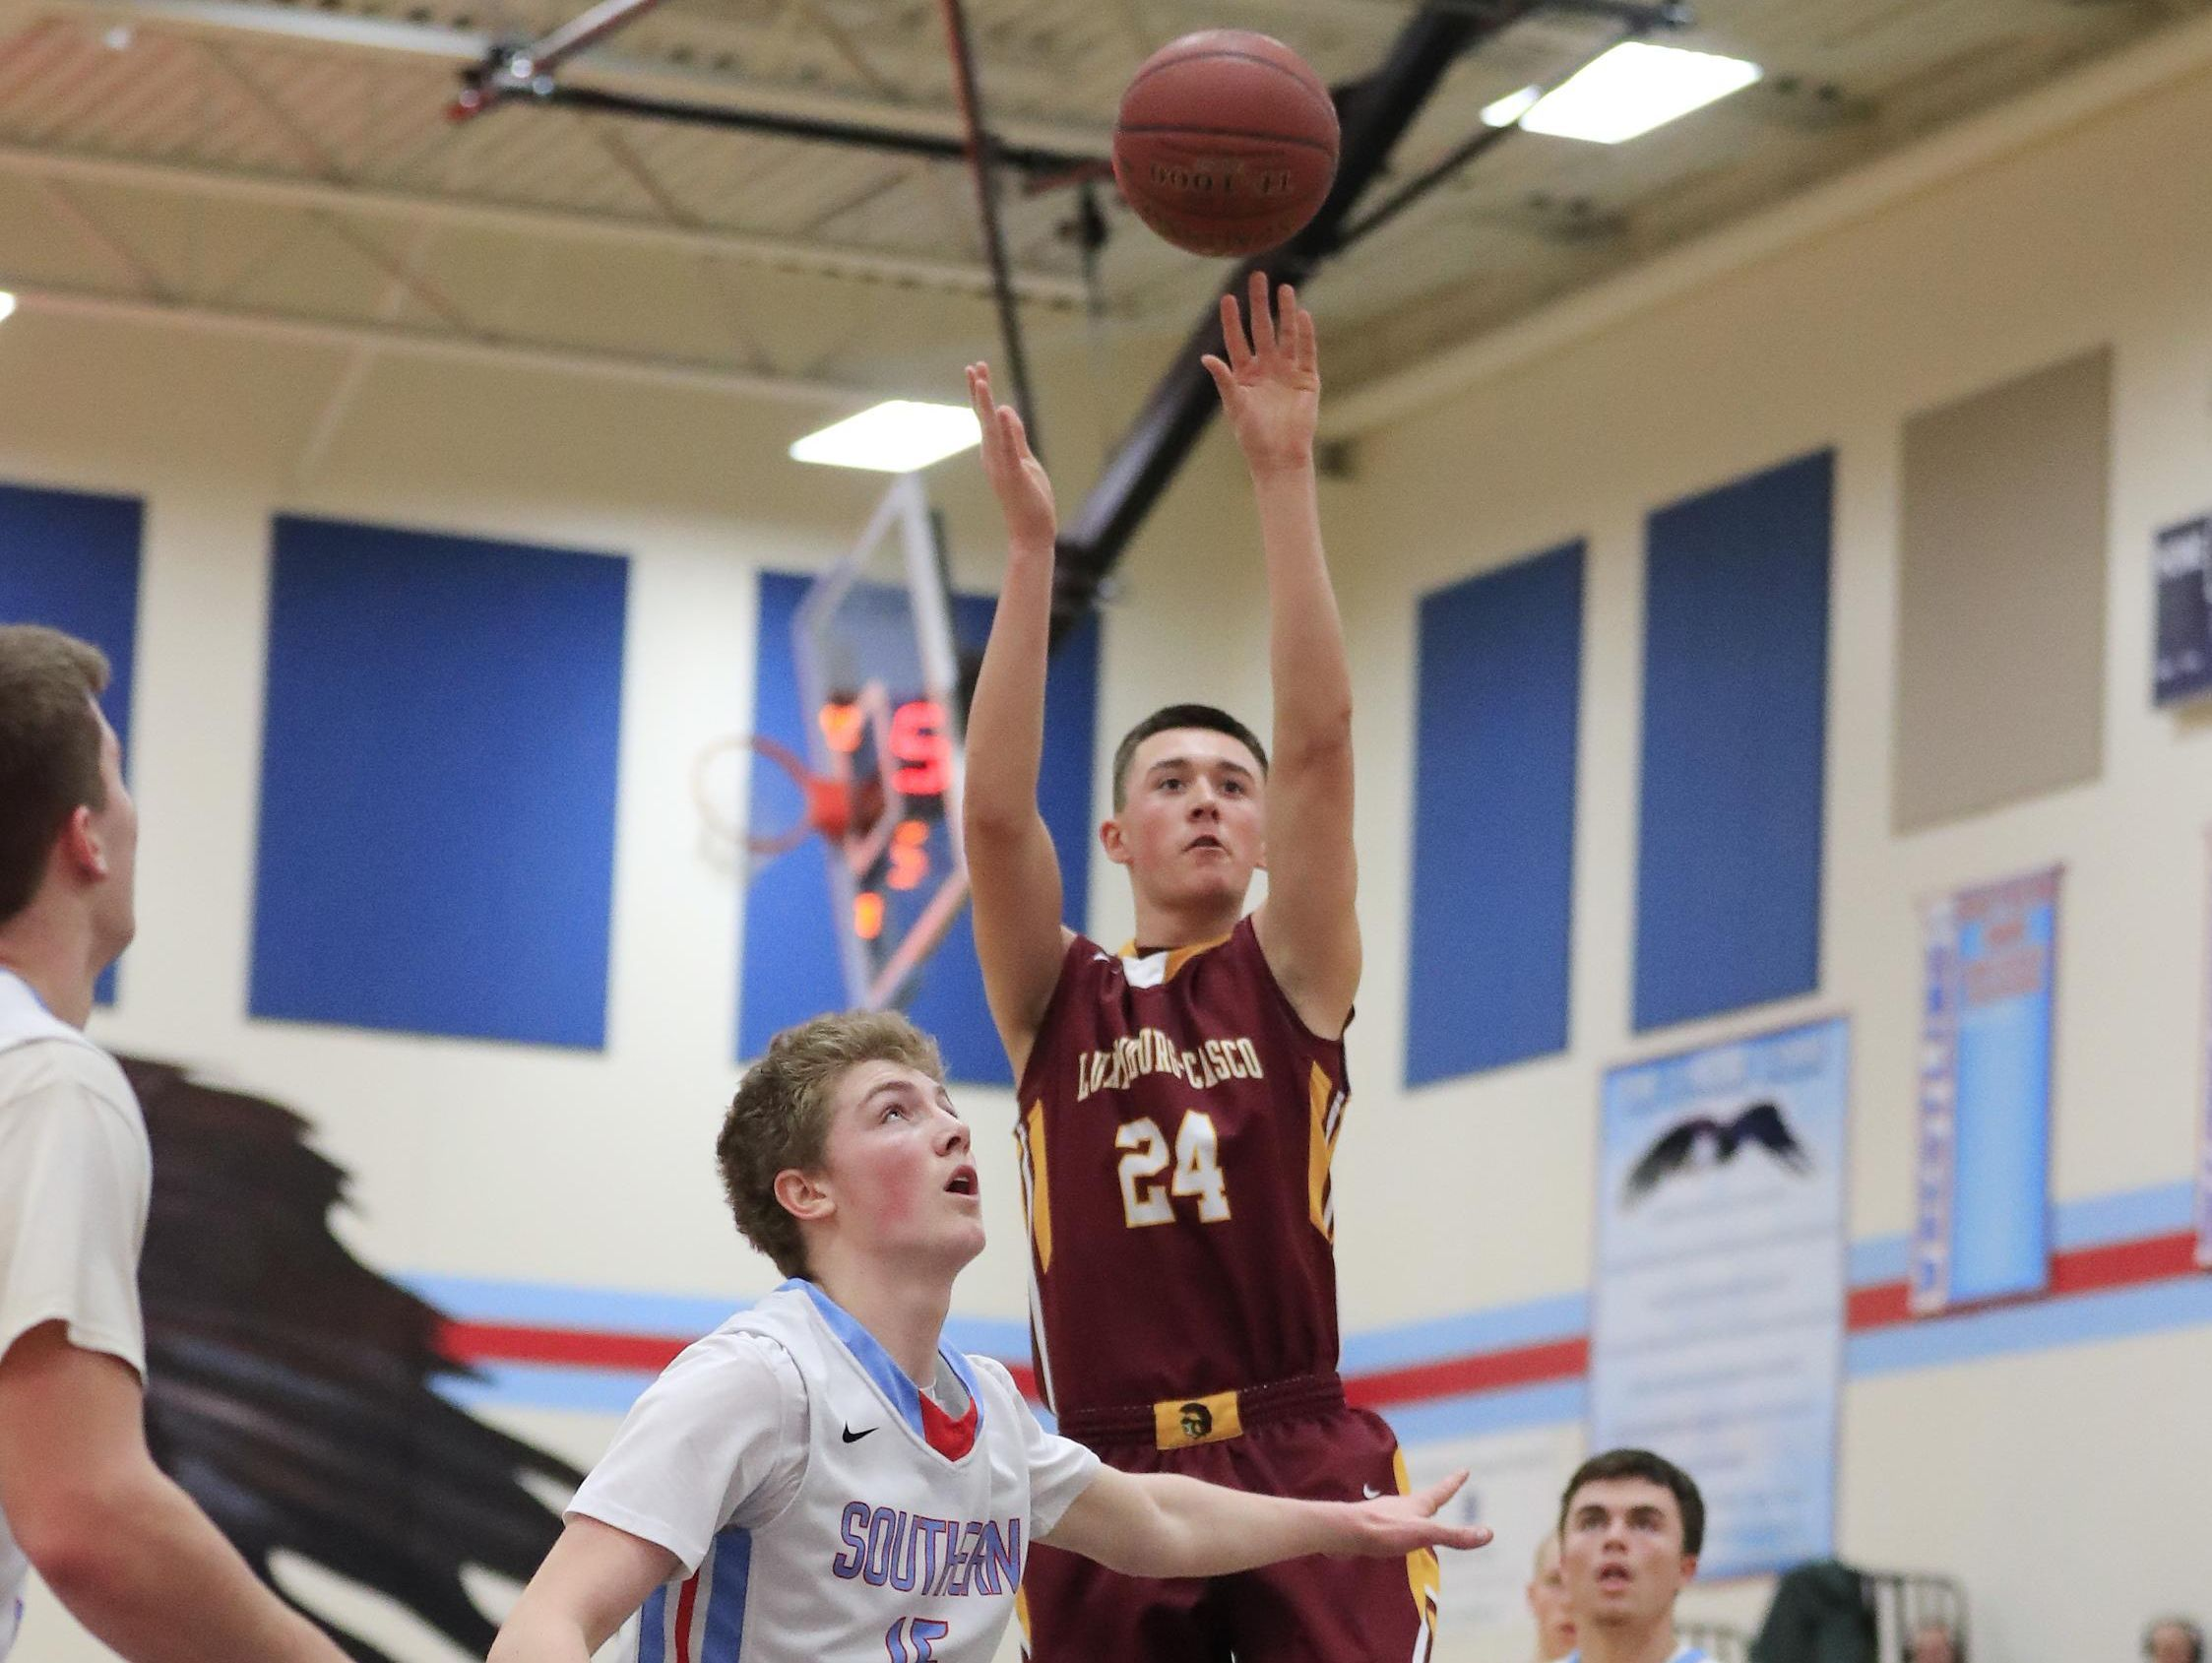 Luxemburg-Casco senior Bryce Te Kulve shot 53.8 percent (64-for-119) from 3-point range this season. The 6-foot-3 senior received honorable mention recognition on the Associated Press boys basketball all-state team.